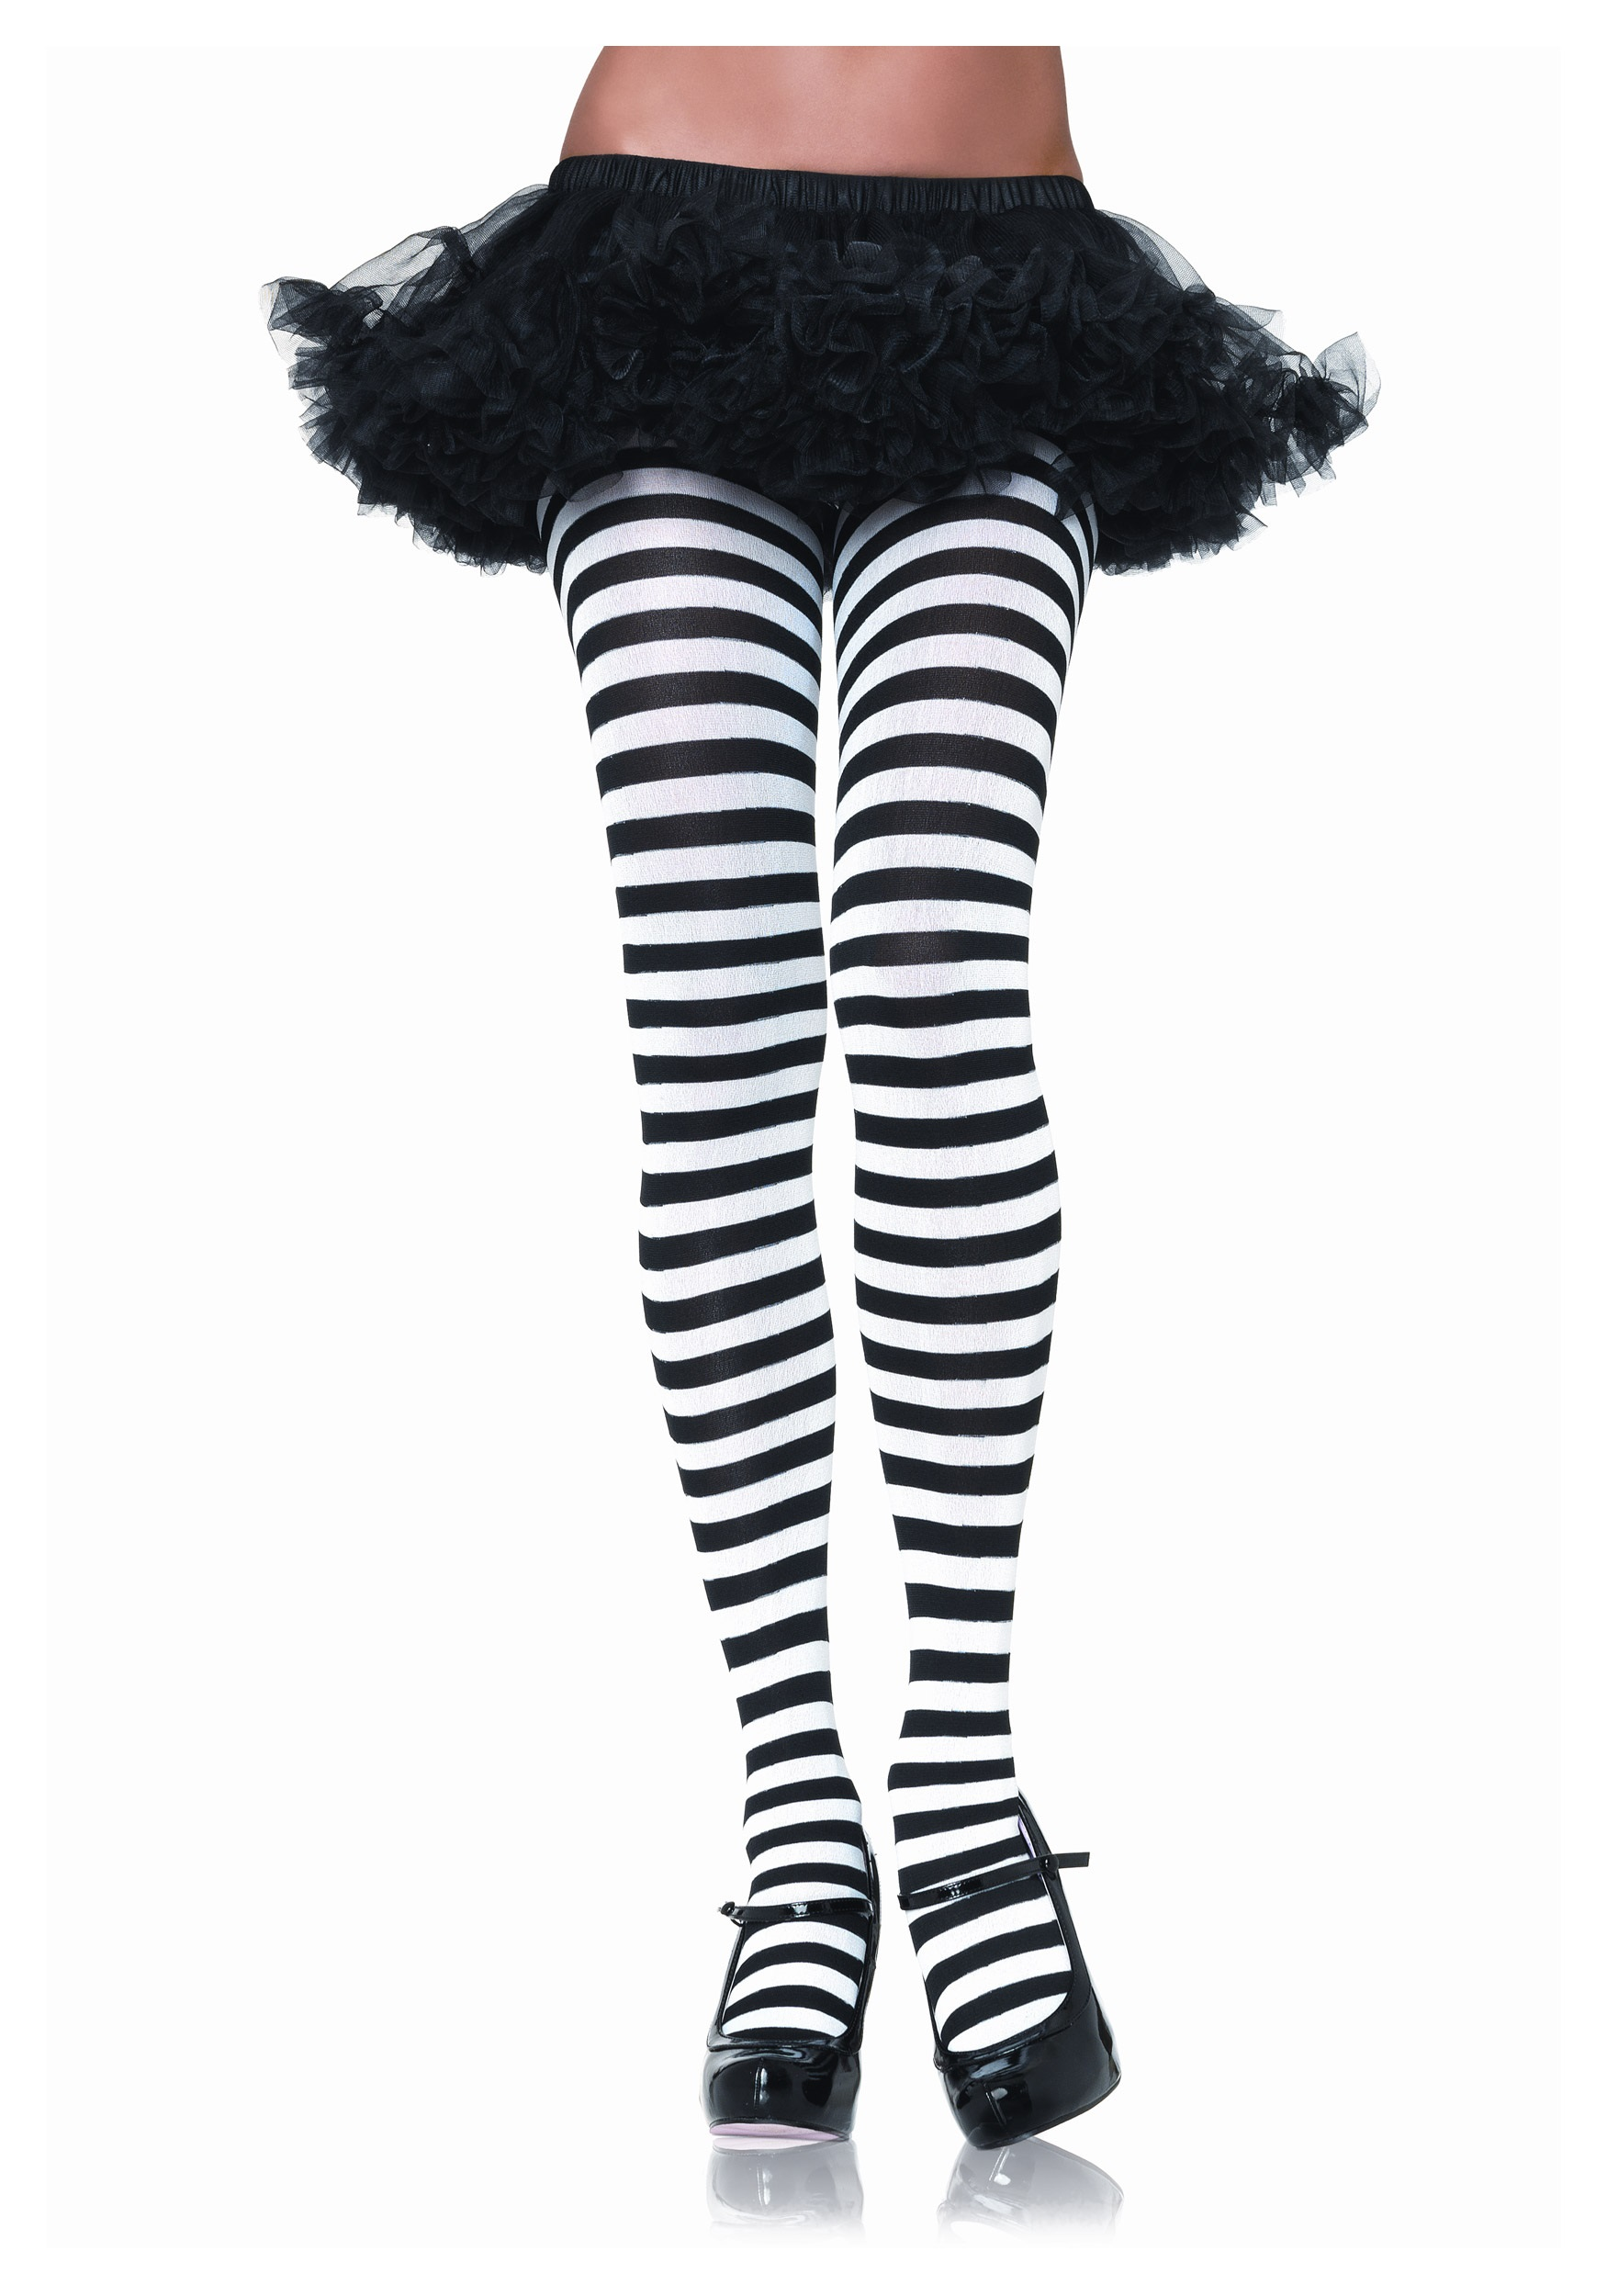 Costume Ideas With Black And White Stripes Black White Striped Tights